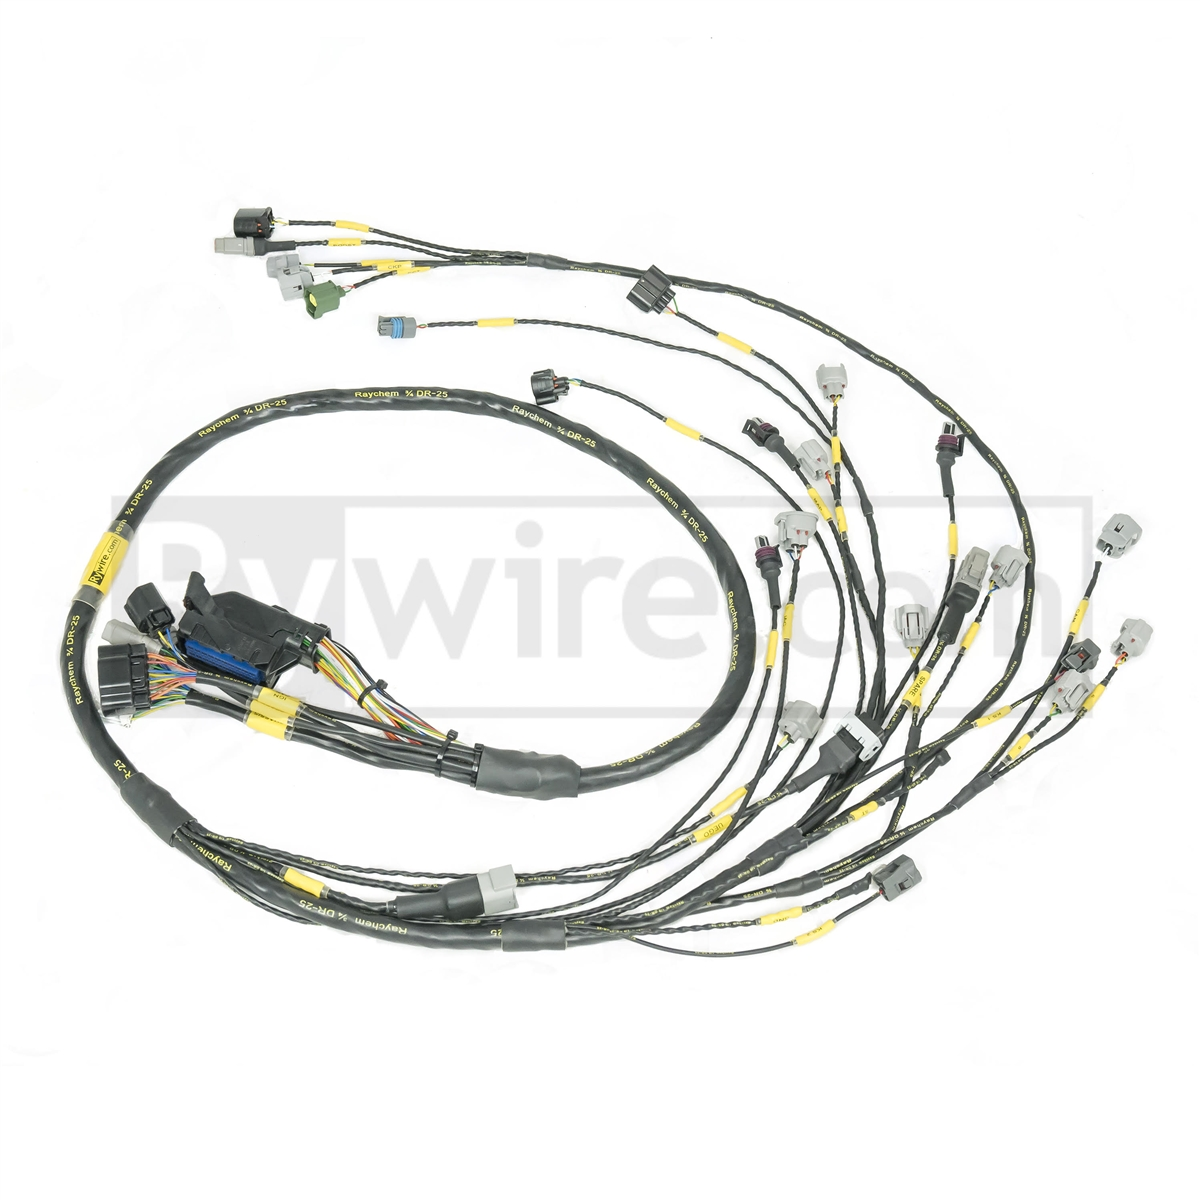 medium resolution of toyota 2jz infinity 506 mil spec engine harness 2jz s14 wiring harness